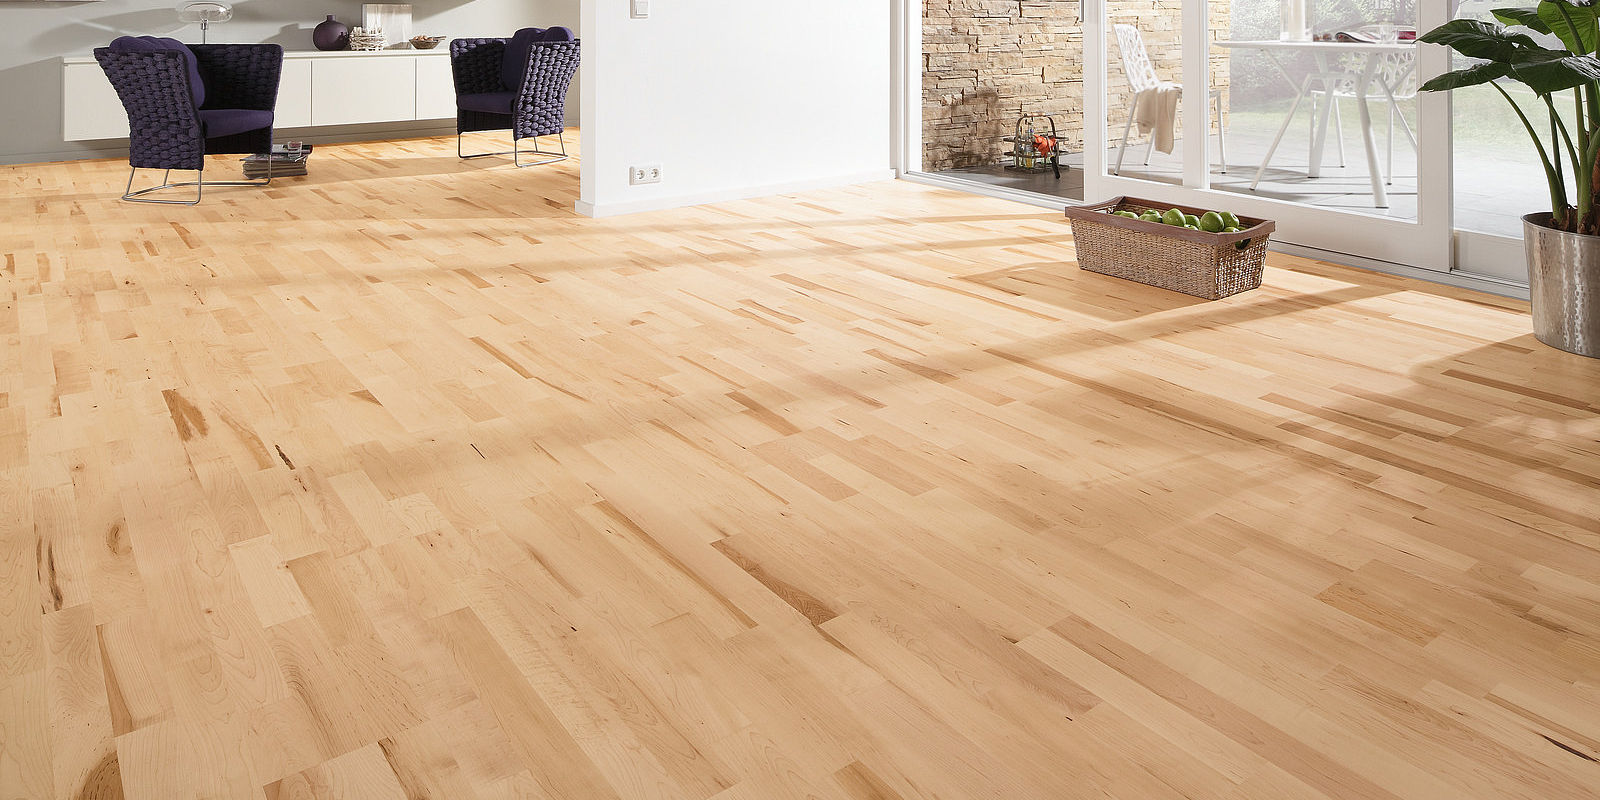 Create unique and safe parquetry flooring installation Melbourne